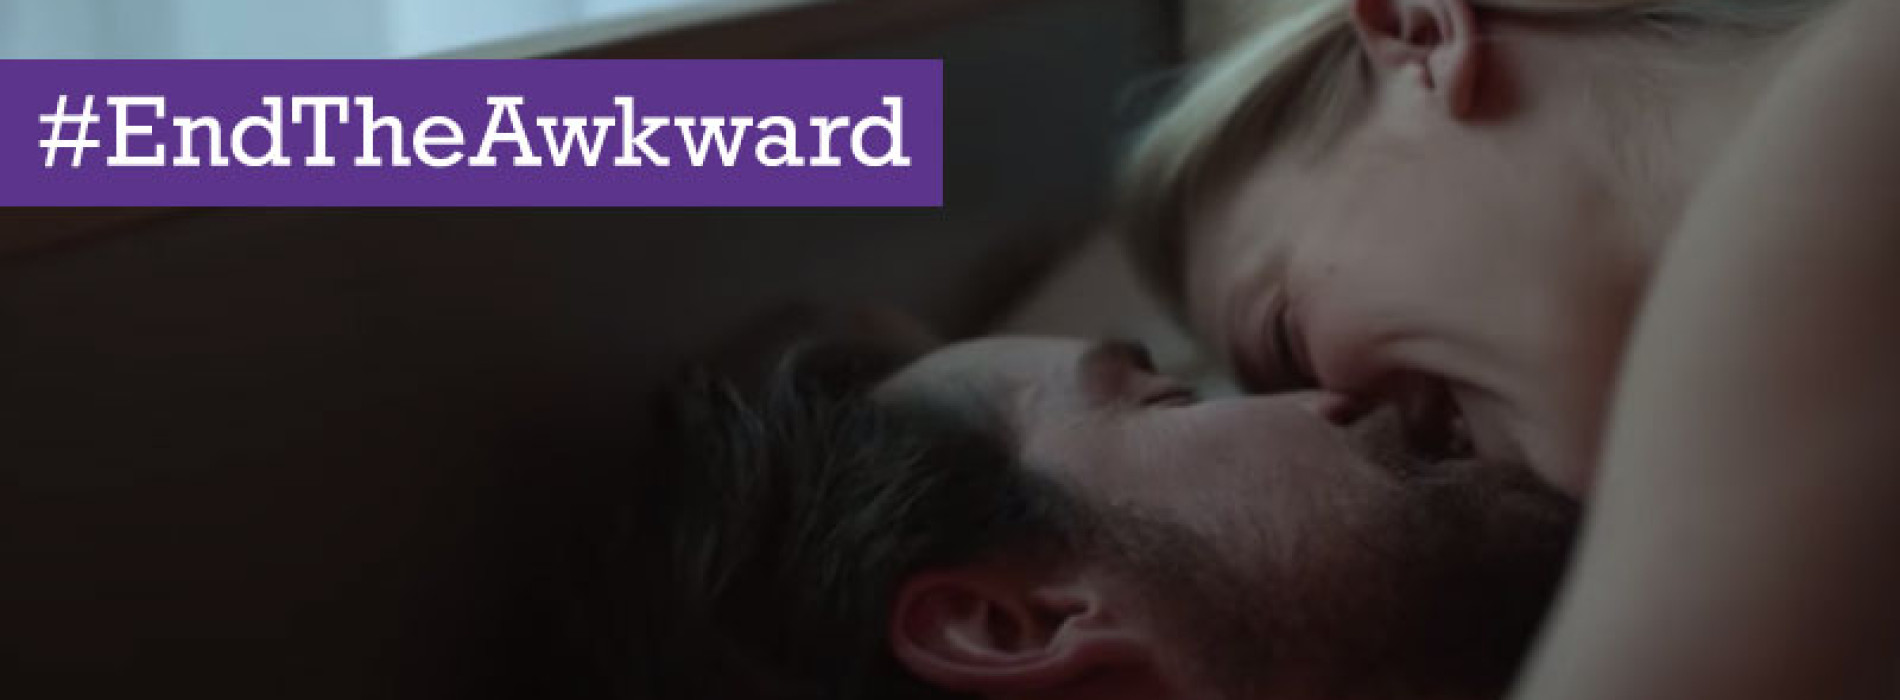 First dates can be cringeworthy, so here's how to 'end the awkward'